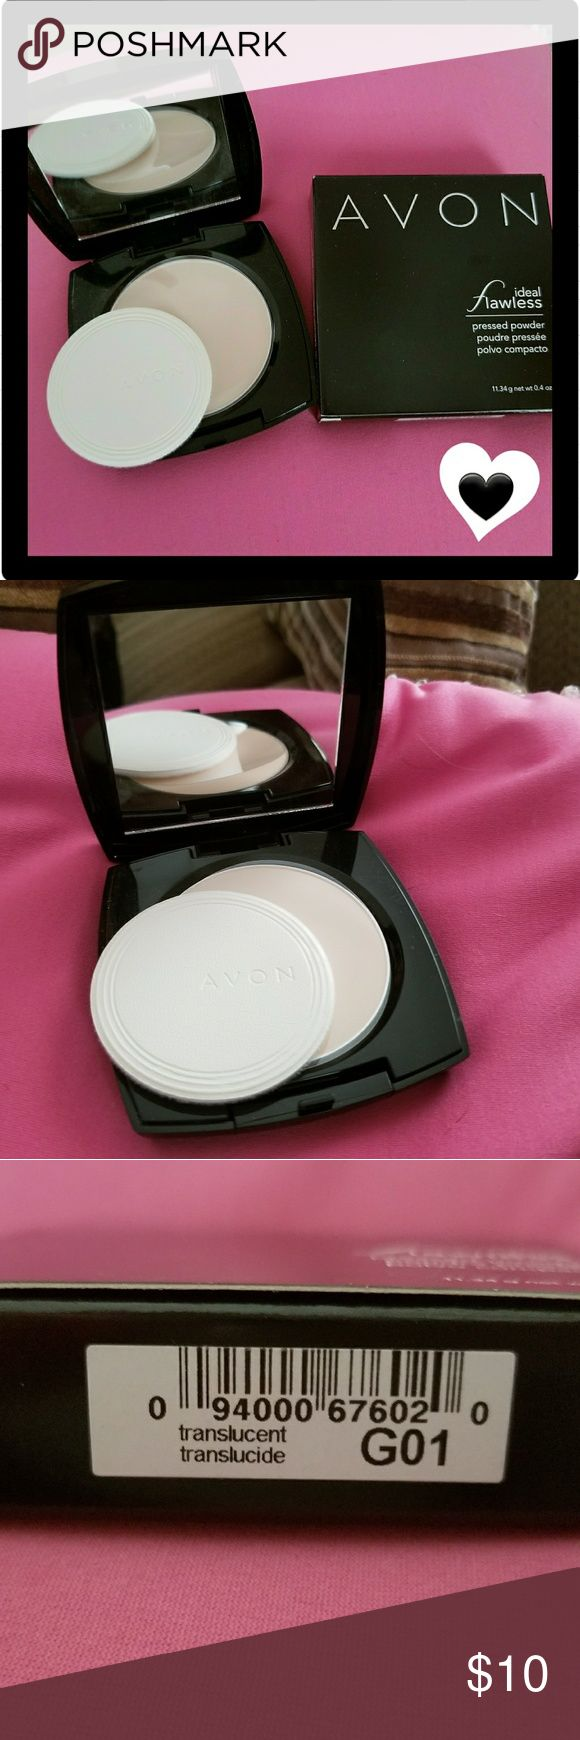 Avon Ideal Flawless Pressed Powder - Translucent💖 Avon Ideal Flawless Pressed Powder in Translucent is silky smooth & very light. Your skin will look flawless from every angle as it eliminates shine & covers imperfections. It provides a sheer to medium coverage for a natural finish😍💗💋 Avon Makeup Face Powder